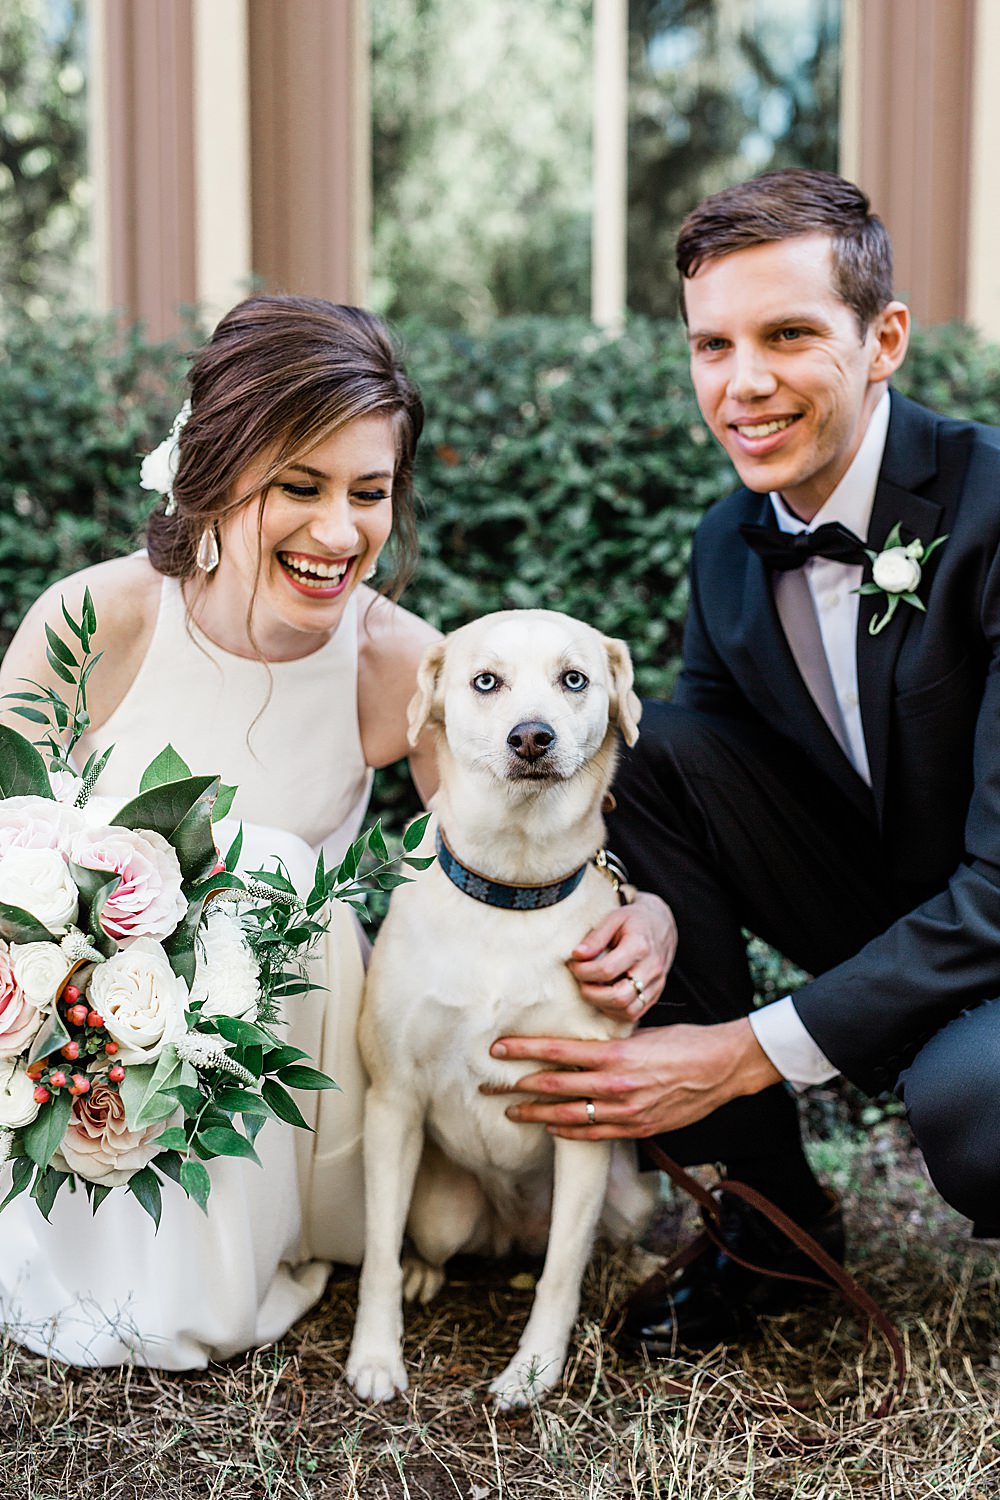 Bride and Groom smile with their puppy at their wedding